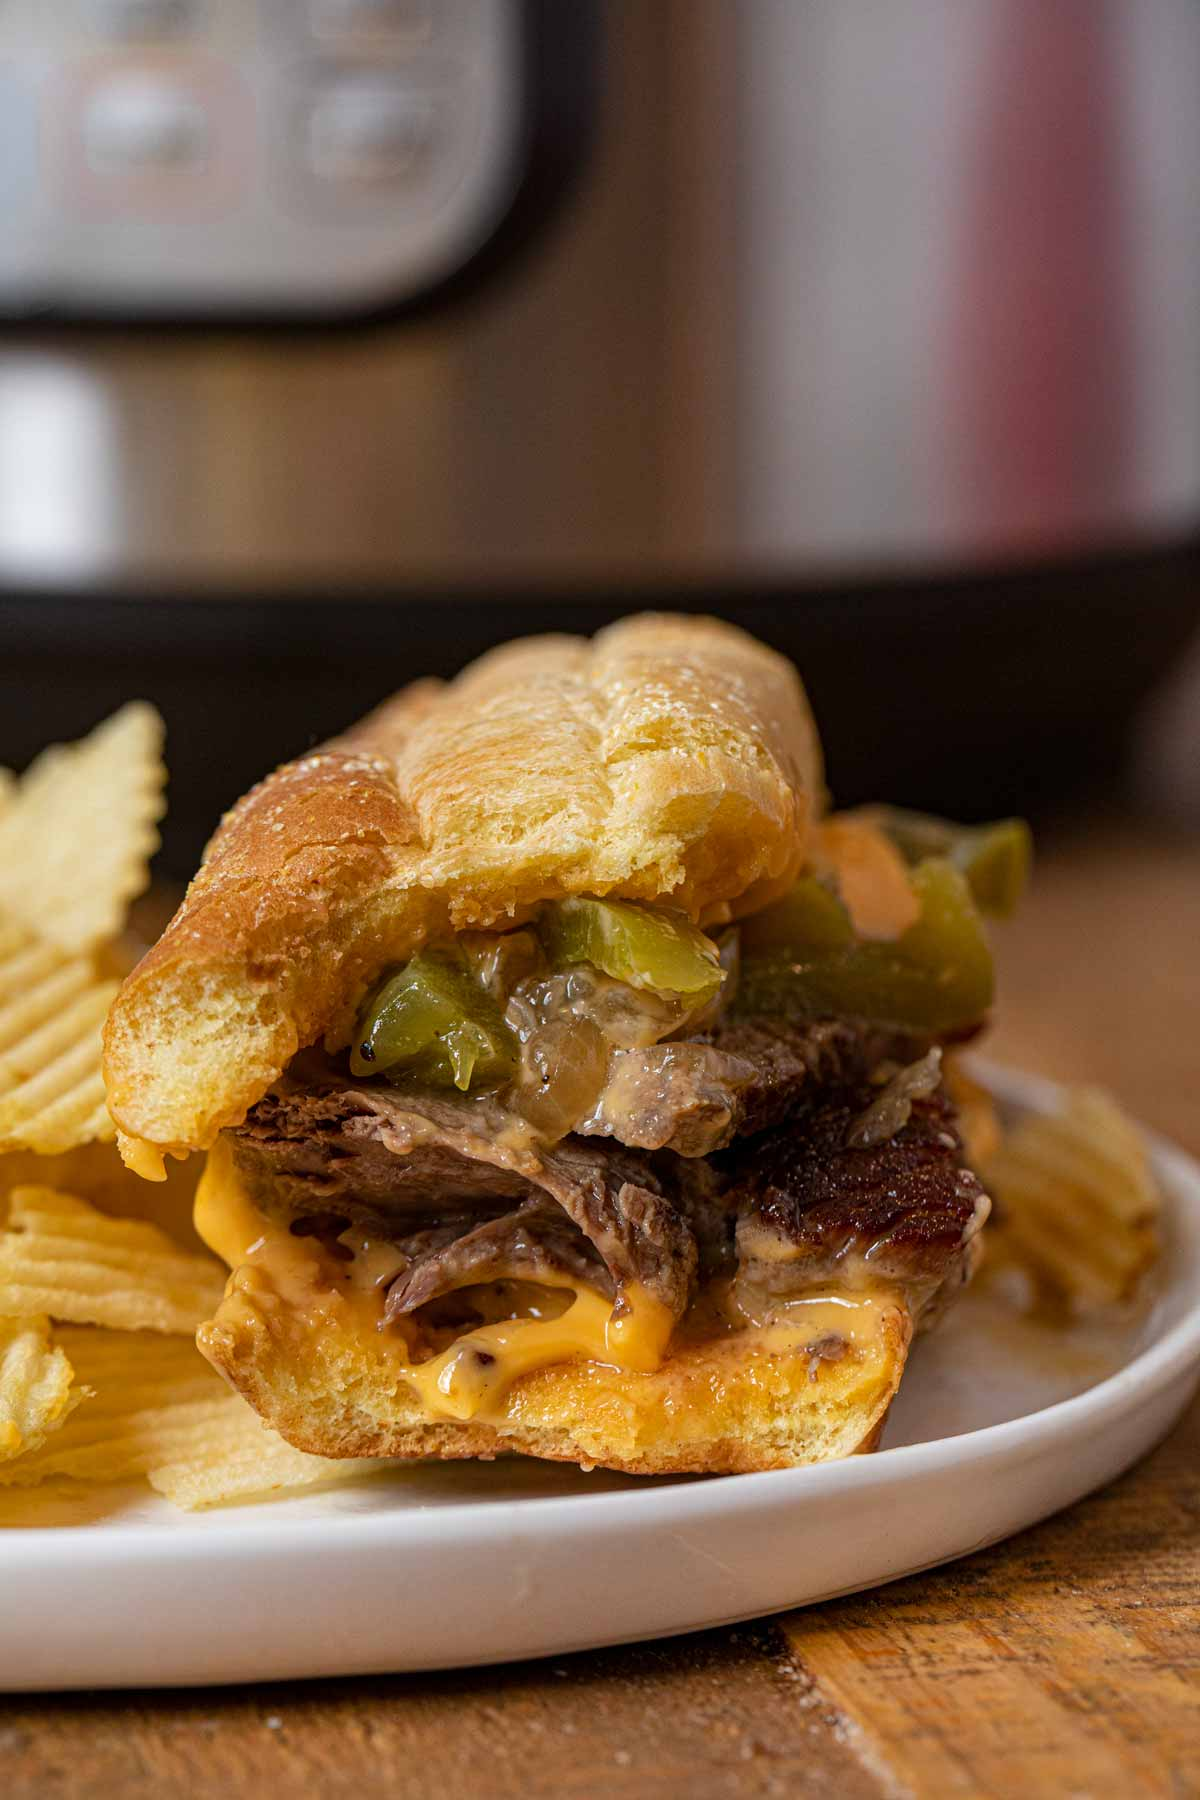 Instant Pot Philly Cheese Steak Sandwich partially eaten on plate with chips